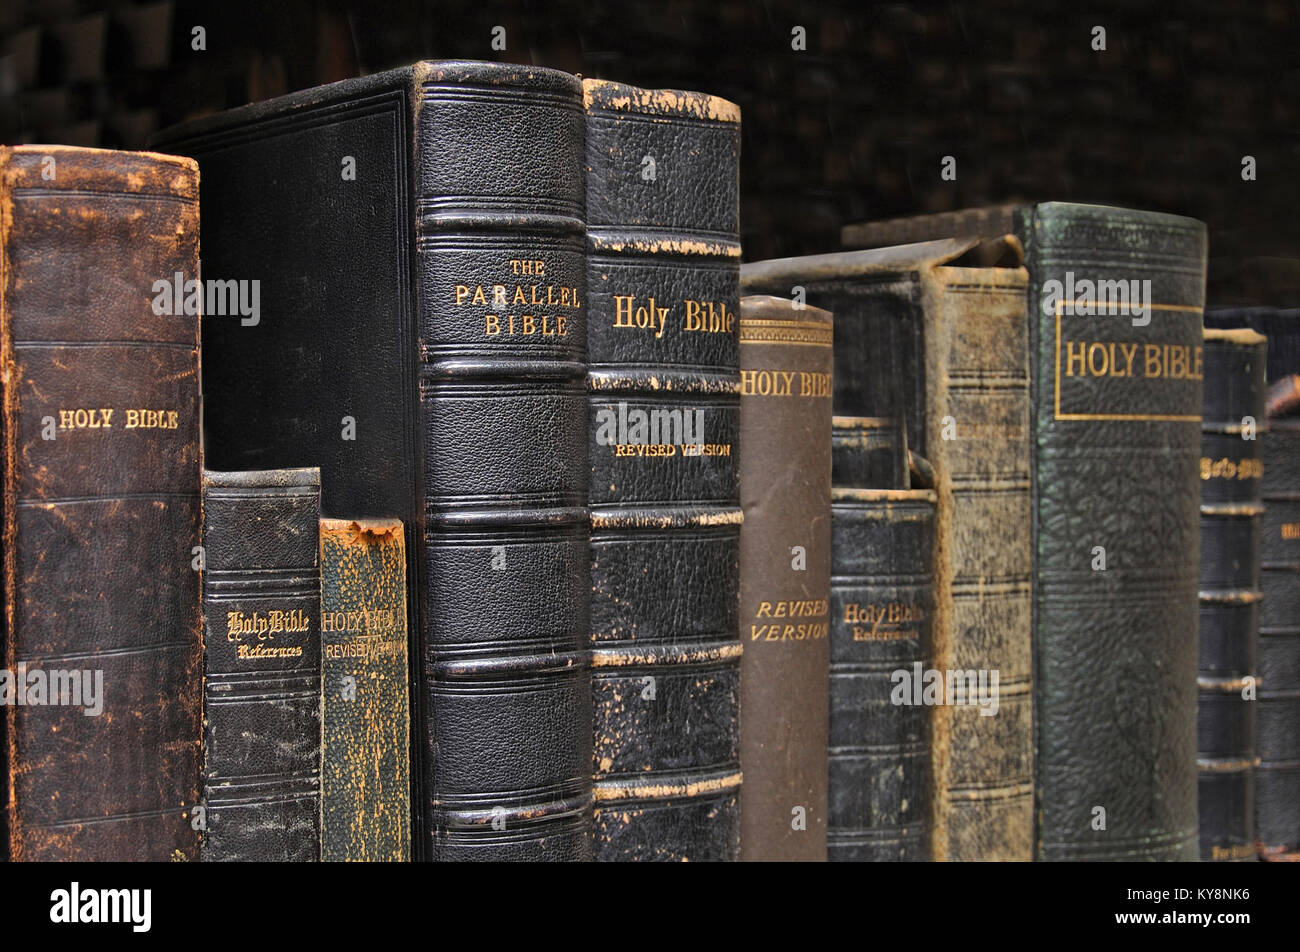 volumes of the Holy Bible. - Stock Image